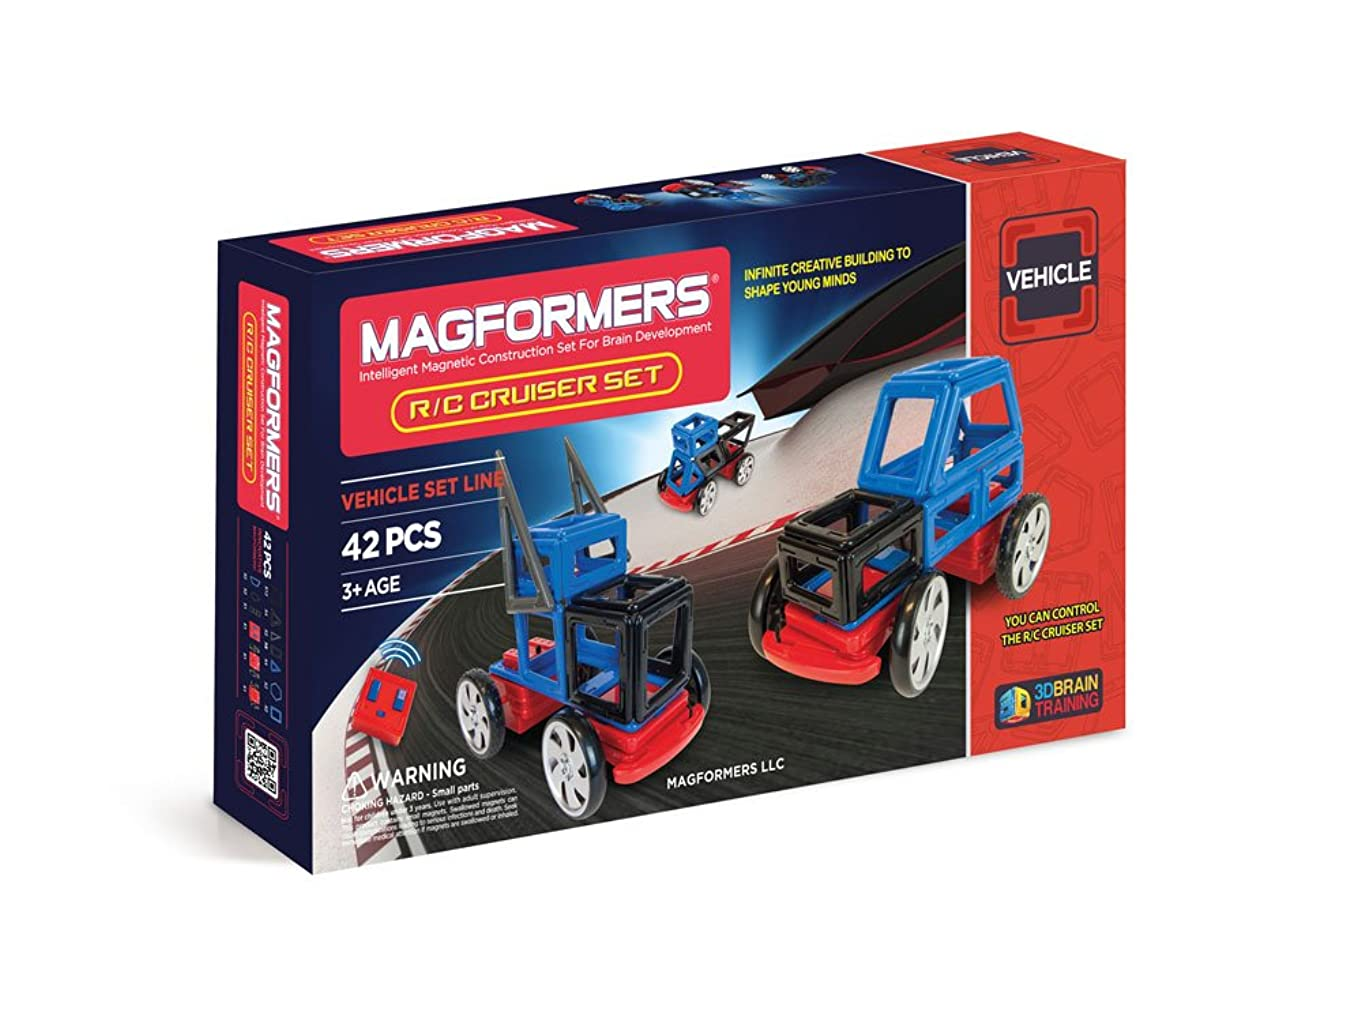 Magformers R/C Cruisers (42-pieces) Set Magnetic    Building      Blocks, Educational  Magnetic    Tiles Kit , Magnetic    Construction  STEM Toy remote control wheel Set